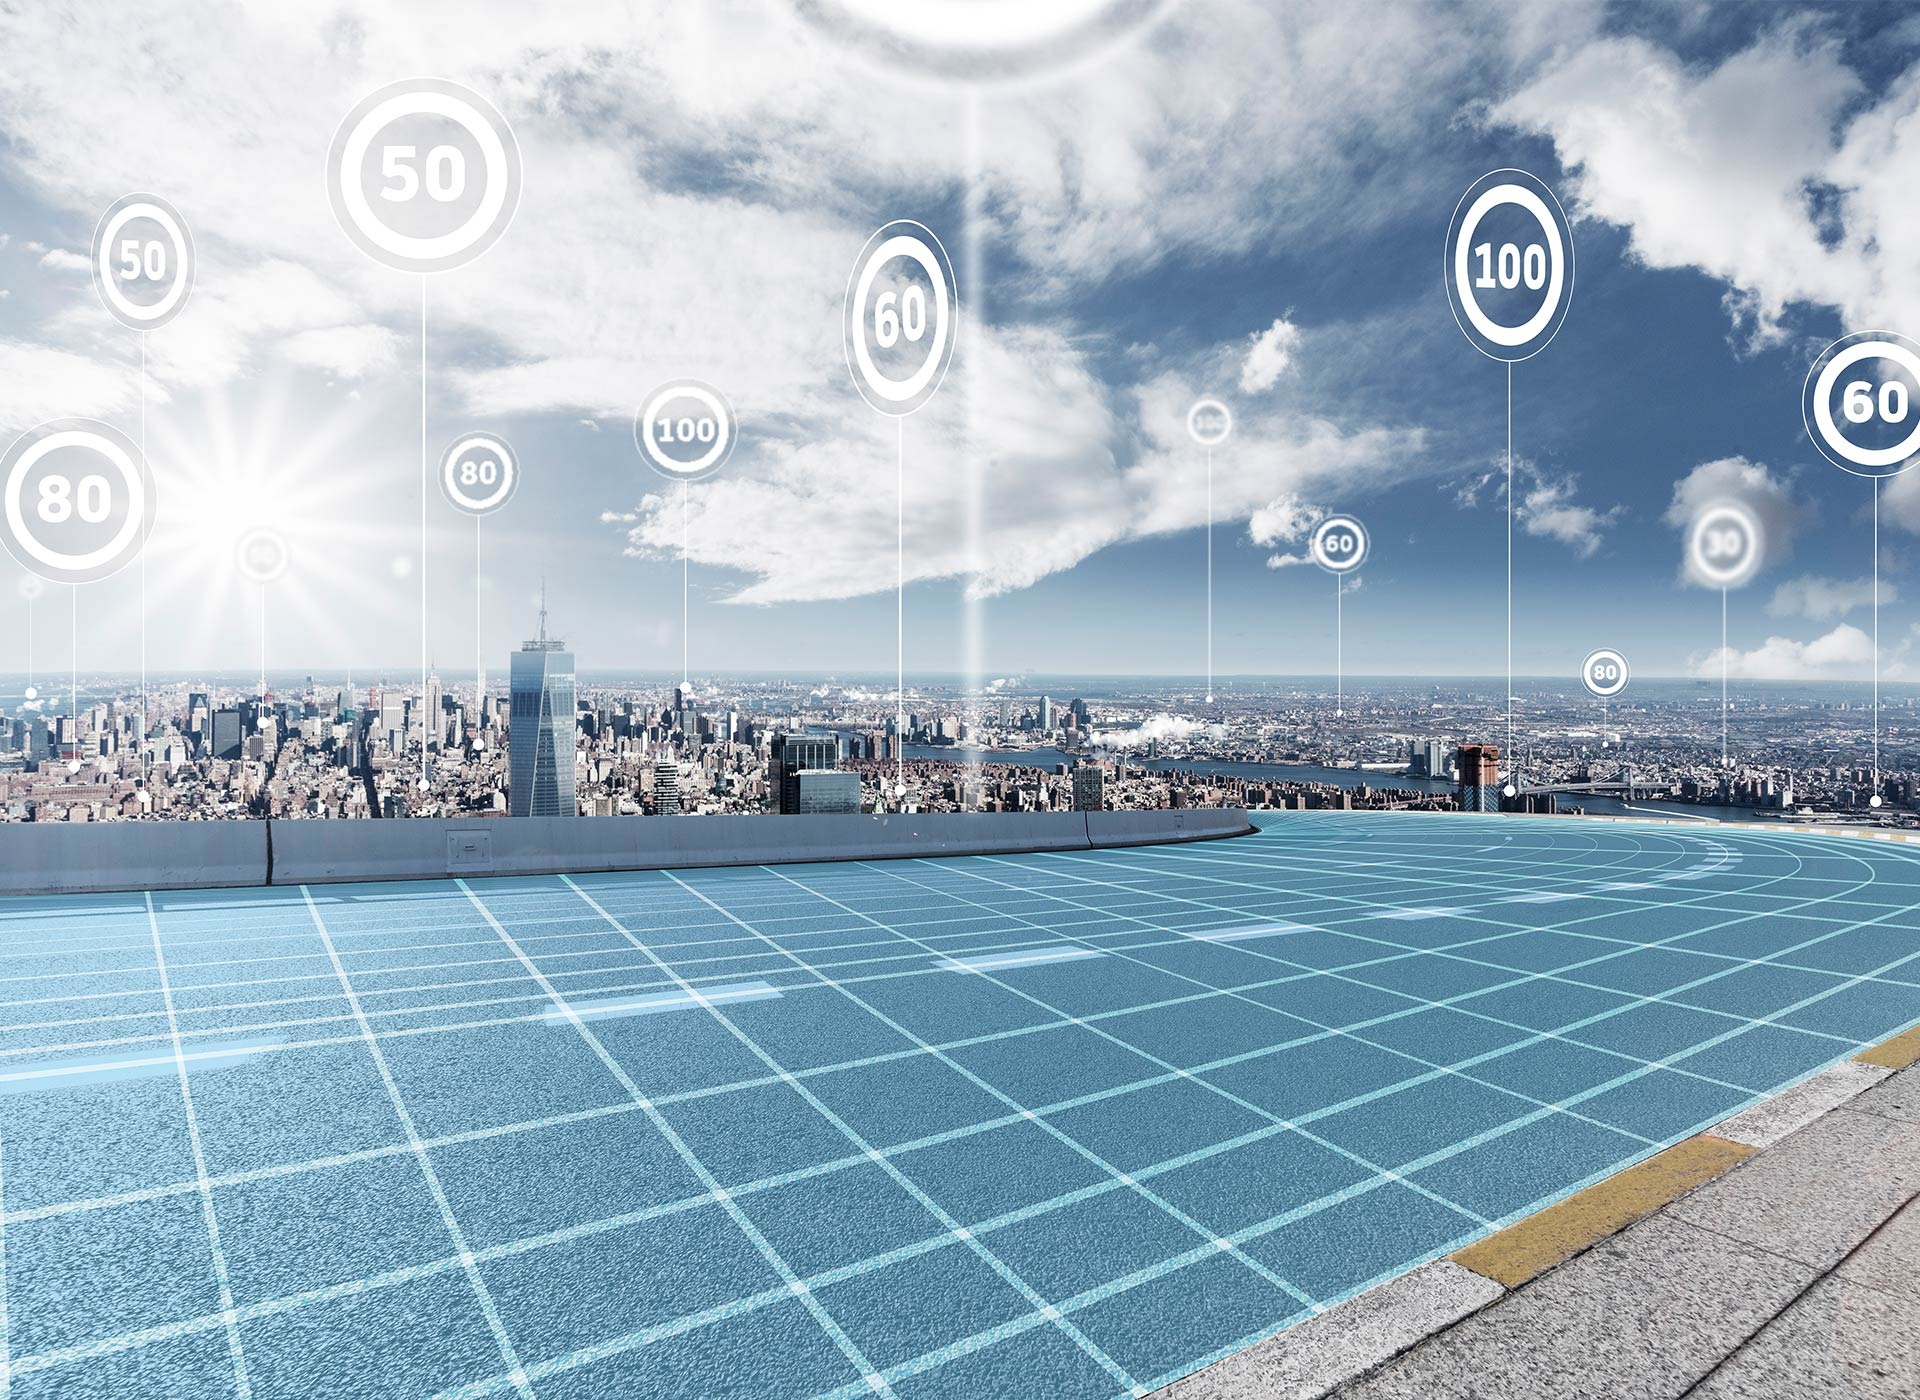 Why quality of digital maps matters for Intelligent Speed Assistance (ISA) compliance